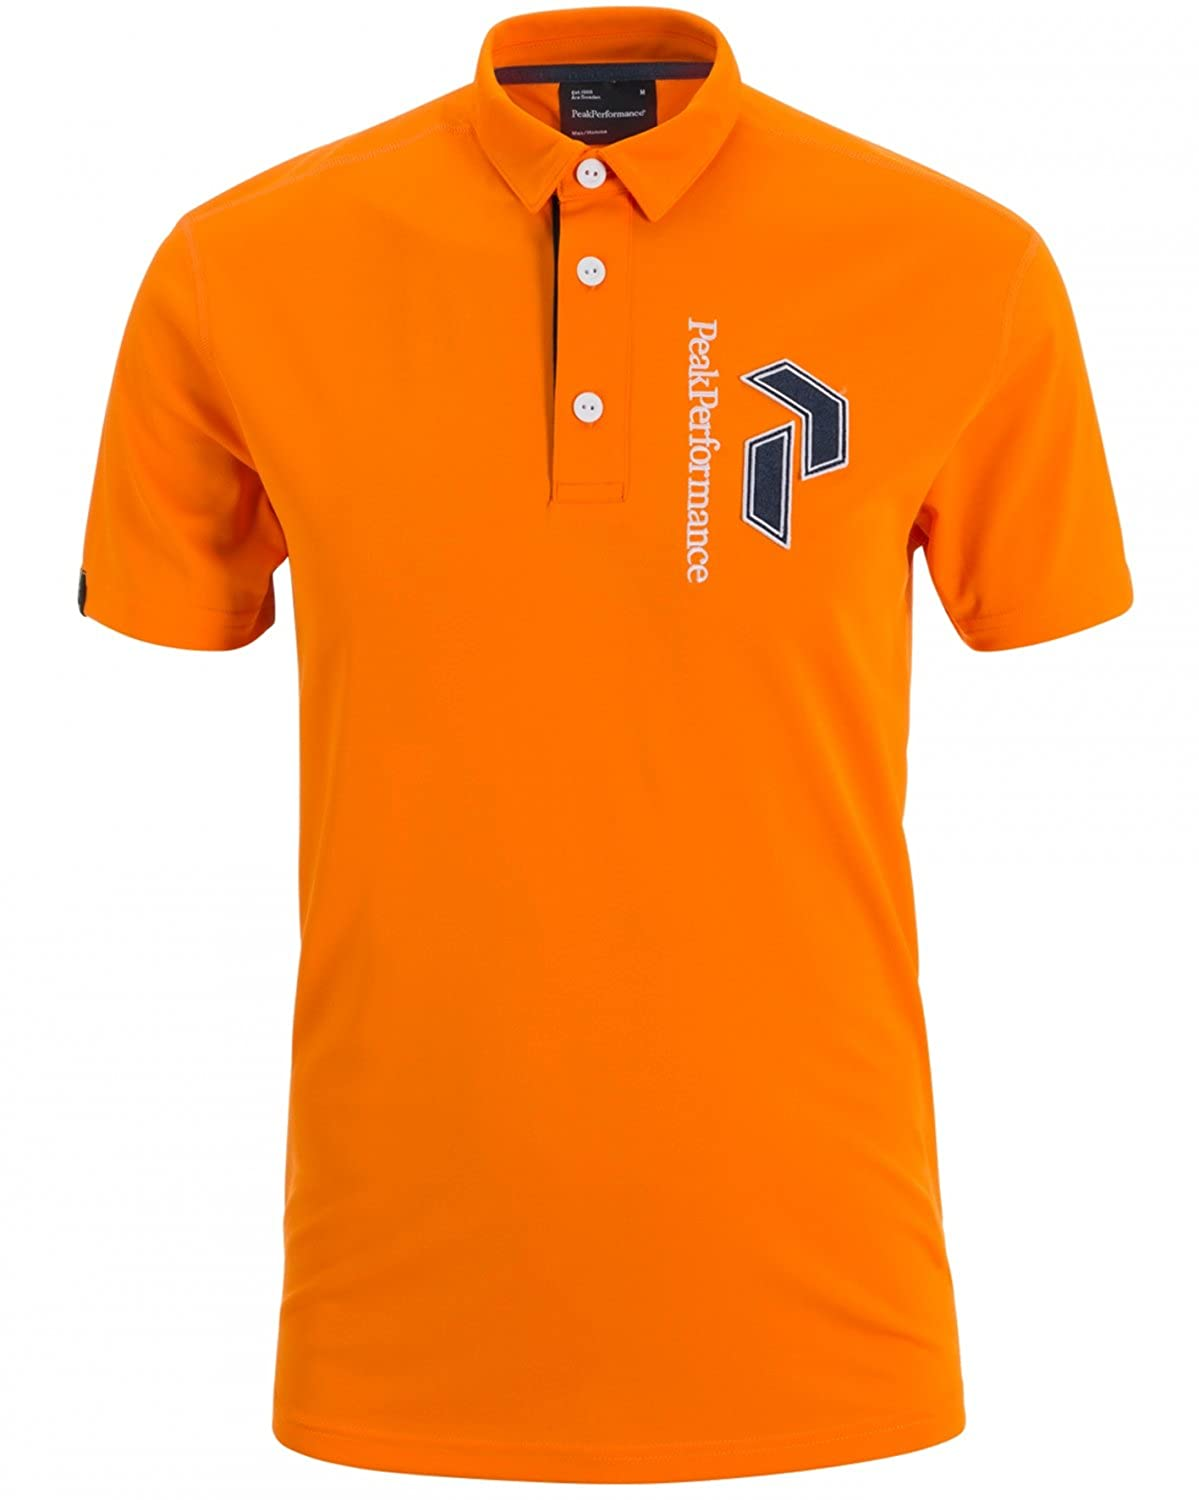 Peak Performance Golf panmore Polo CALEN lavandula.: Amazon.es ...